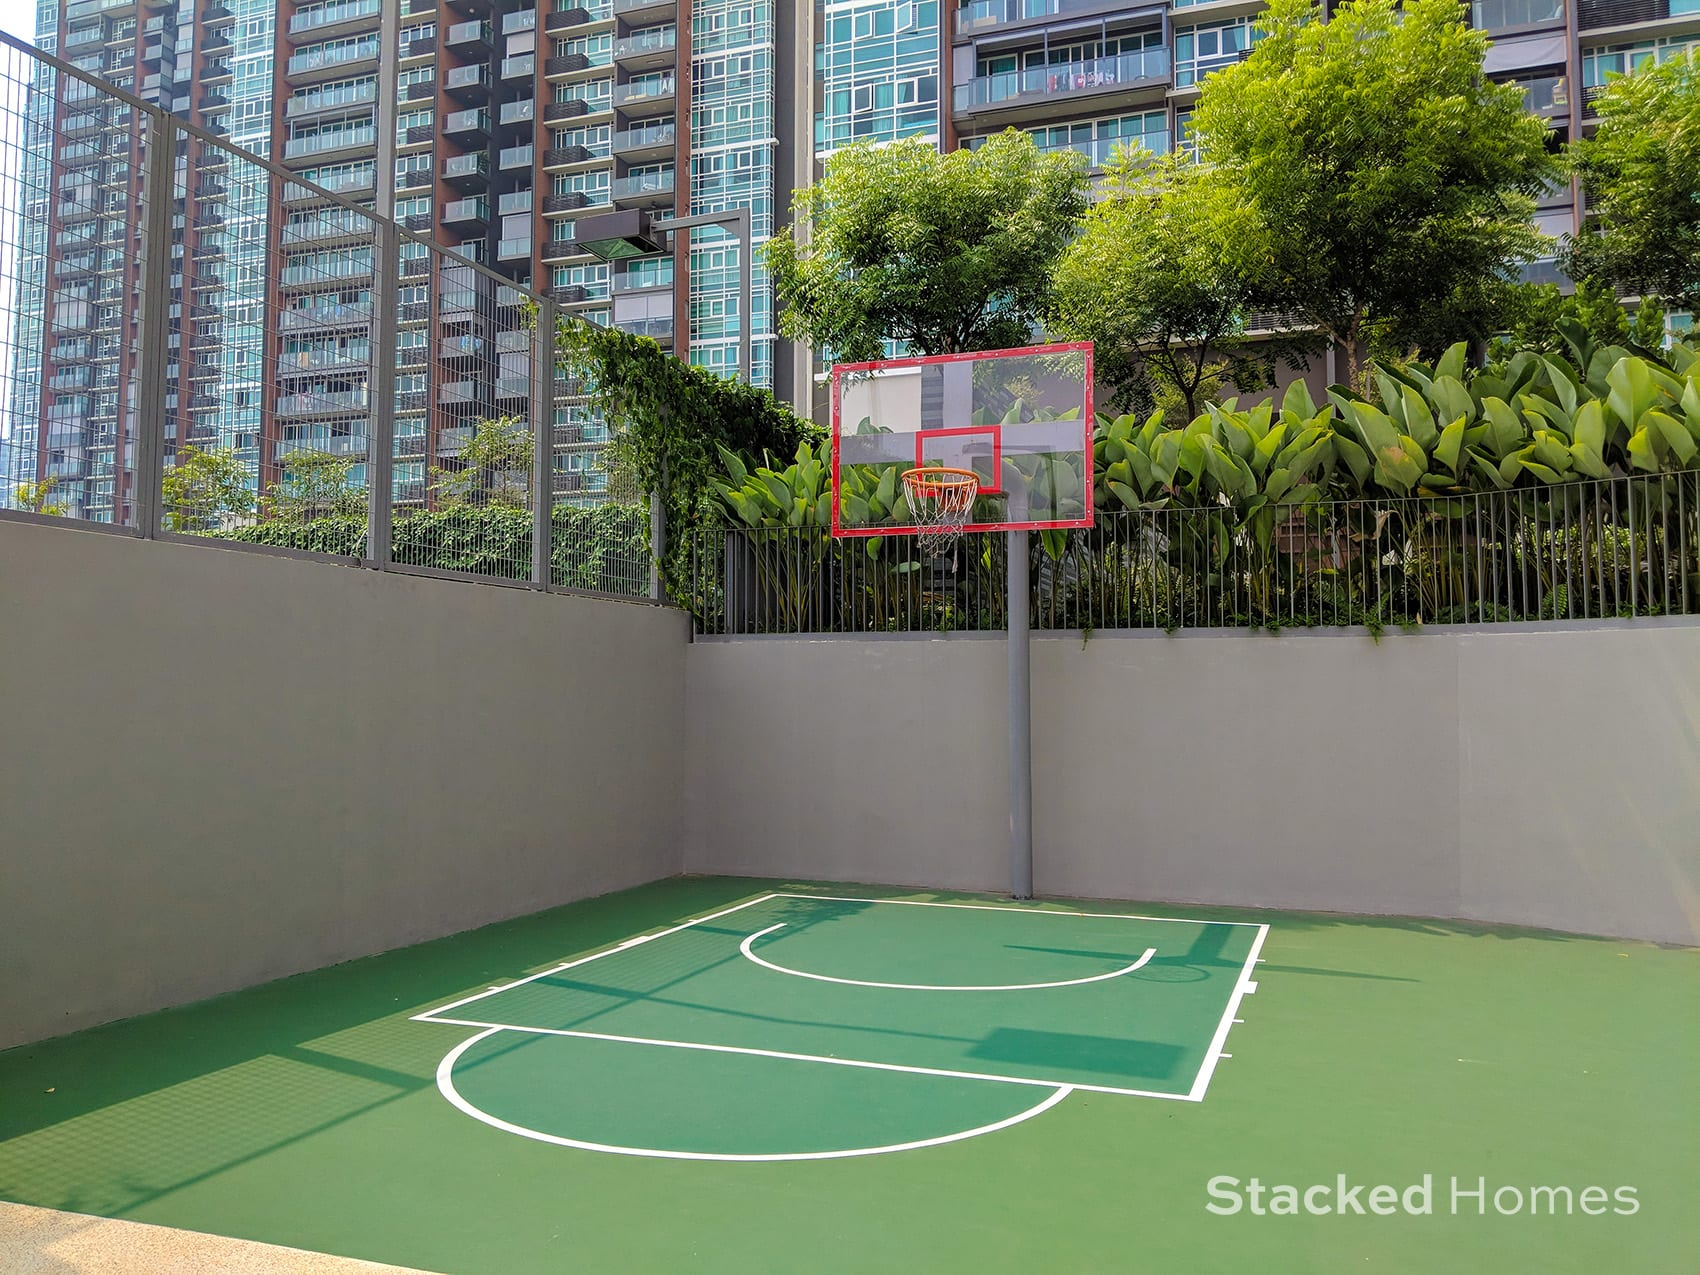 principal garden basketball court